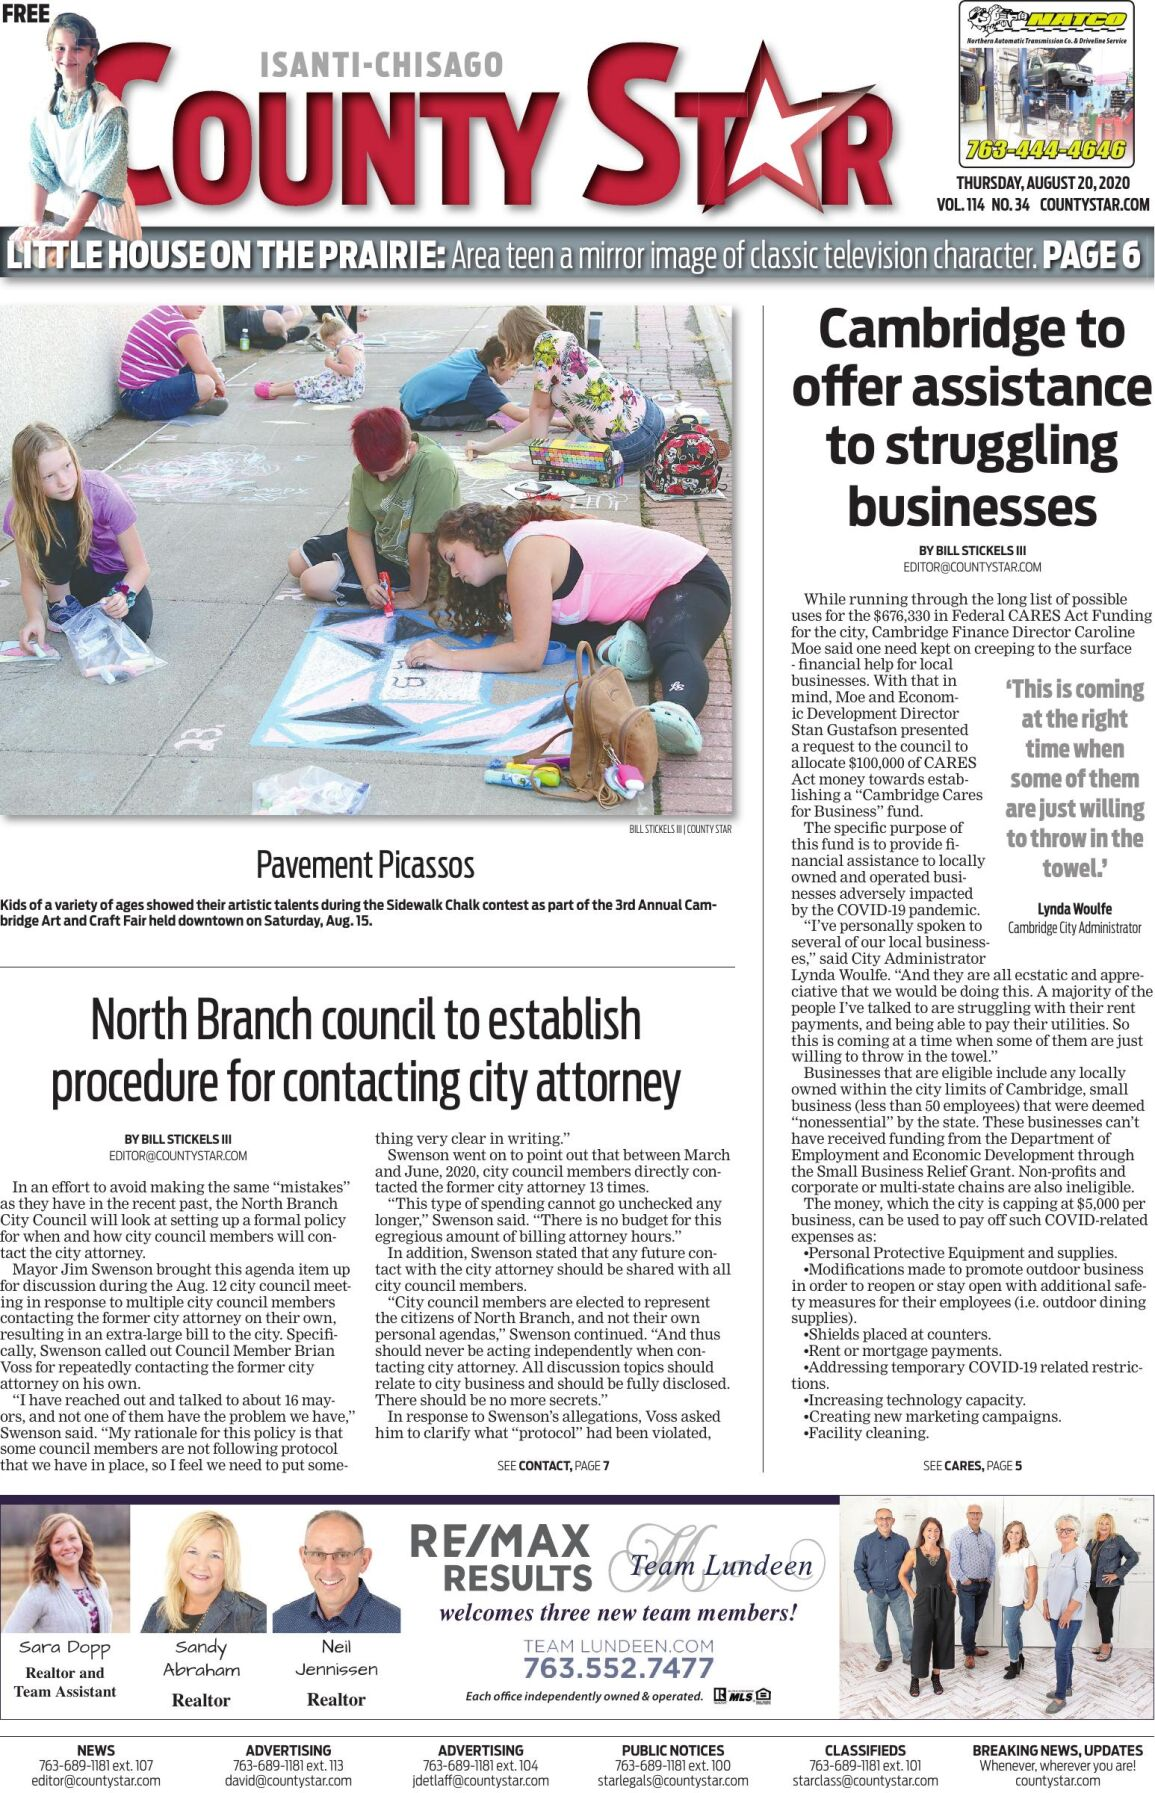 Isanti-Chisago County Star August 20, 2020 e-edition